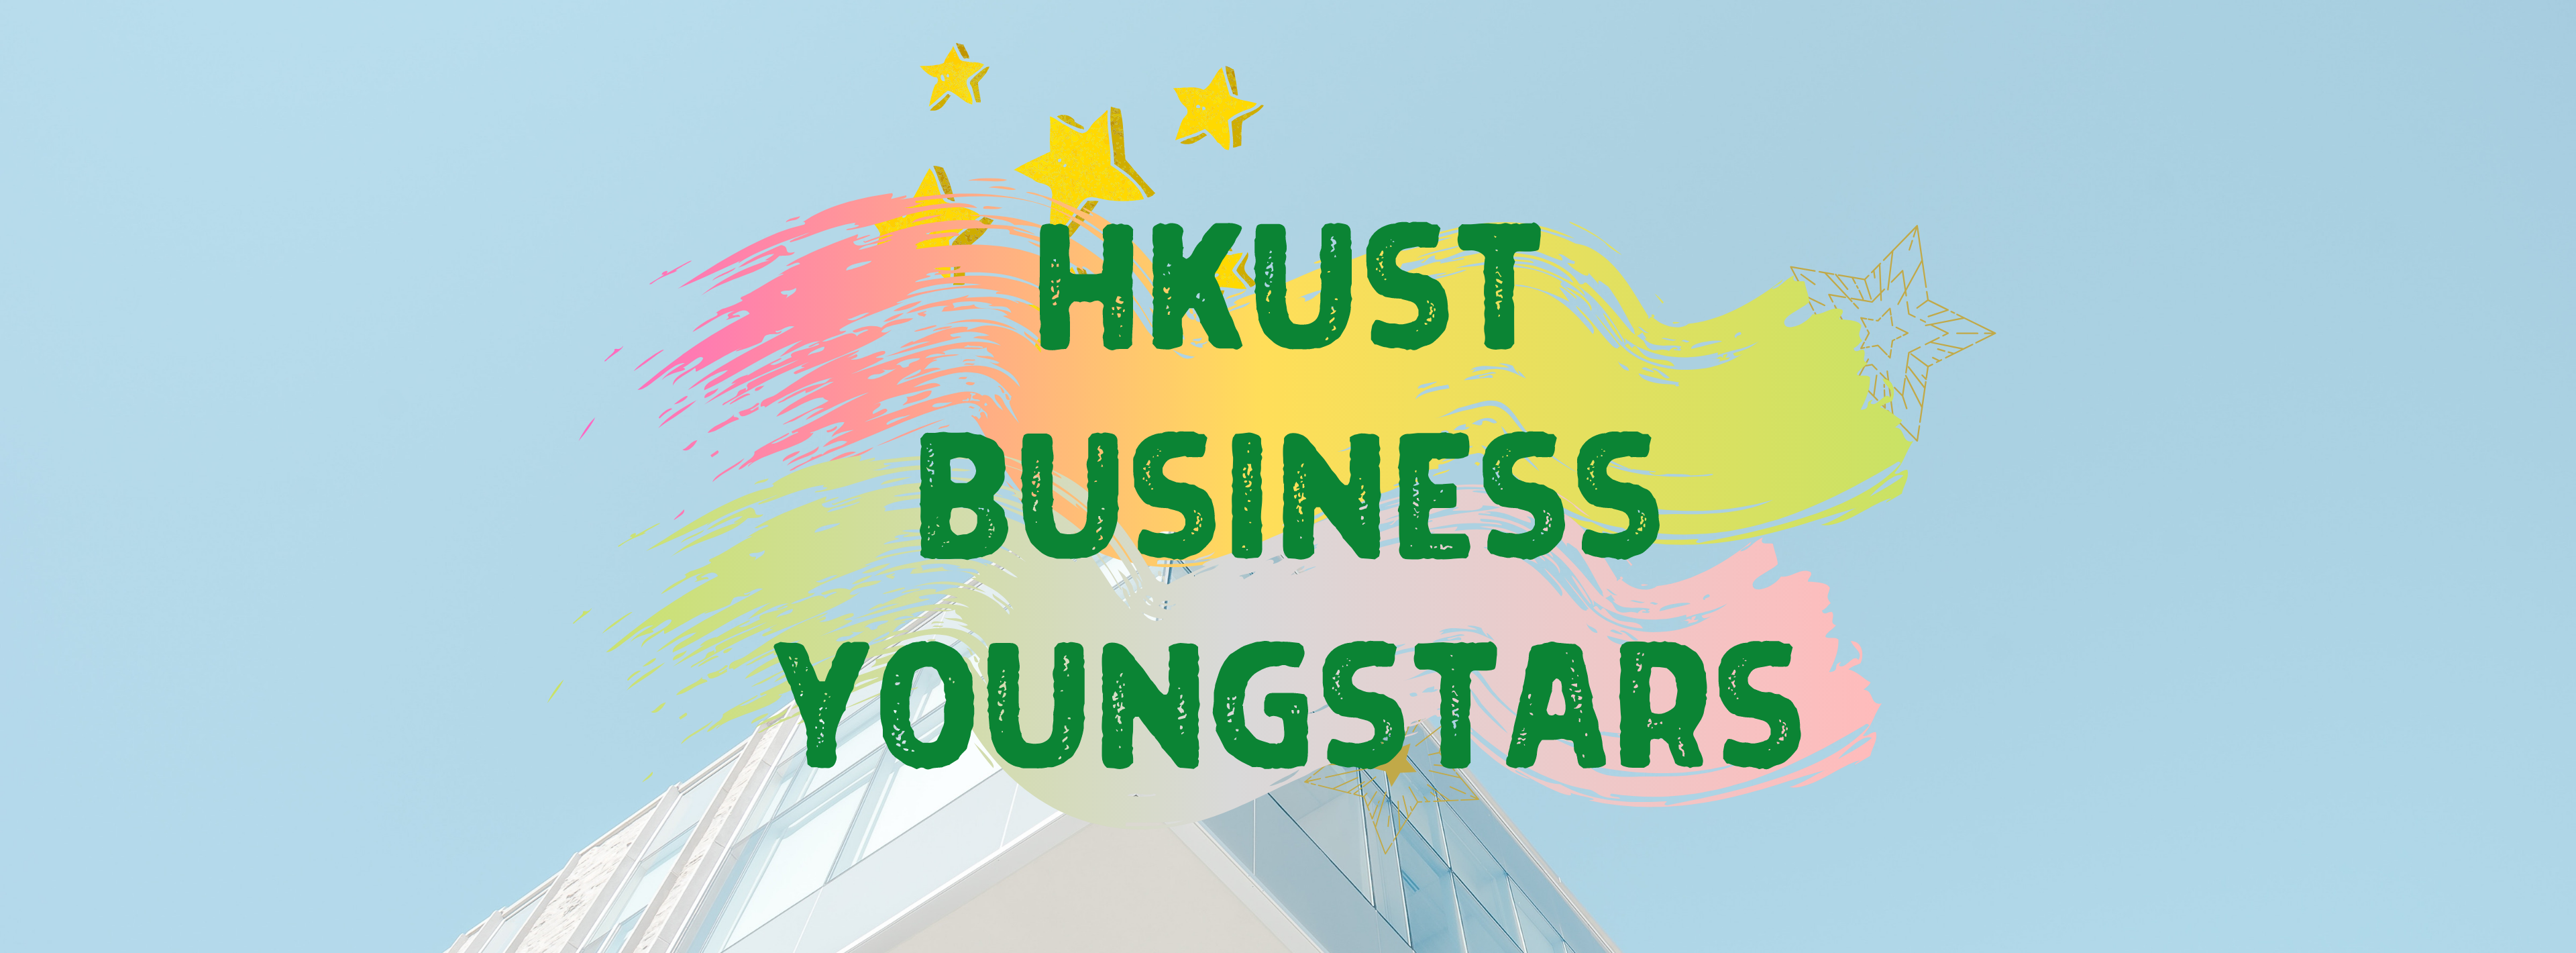 HKUST Business YoungStars (BYS) Program